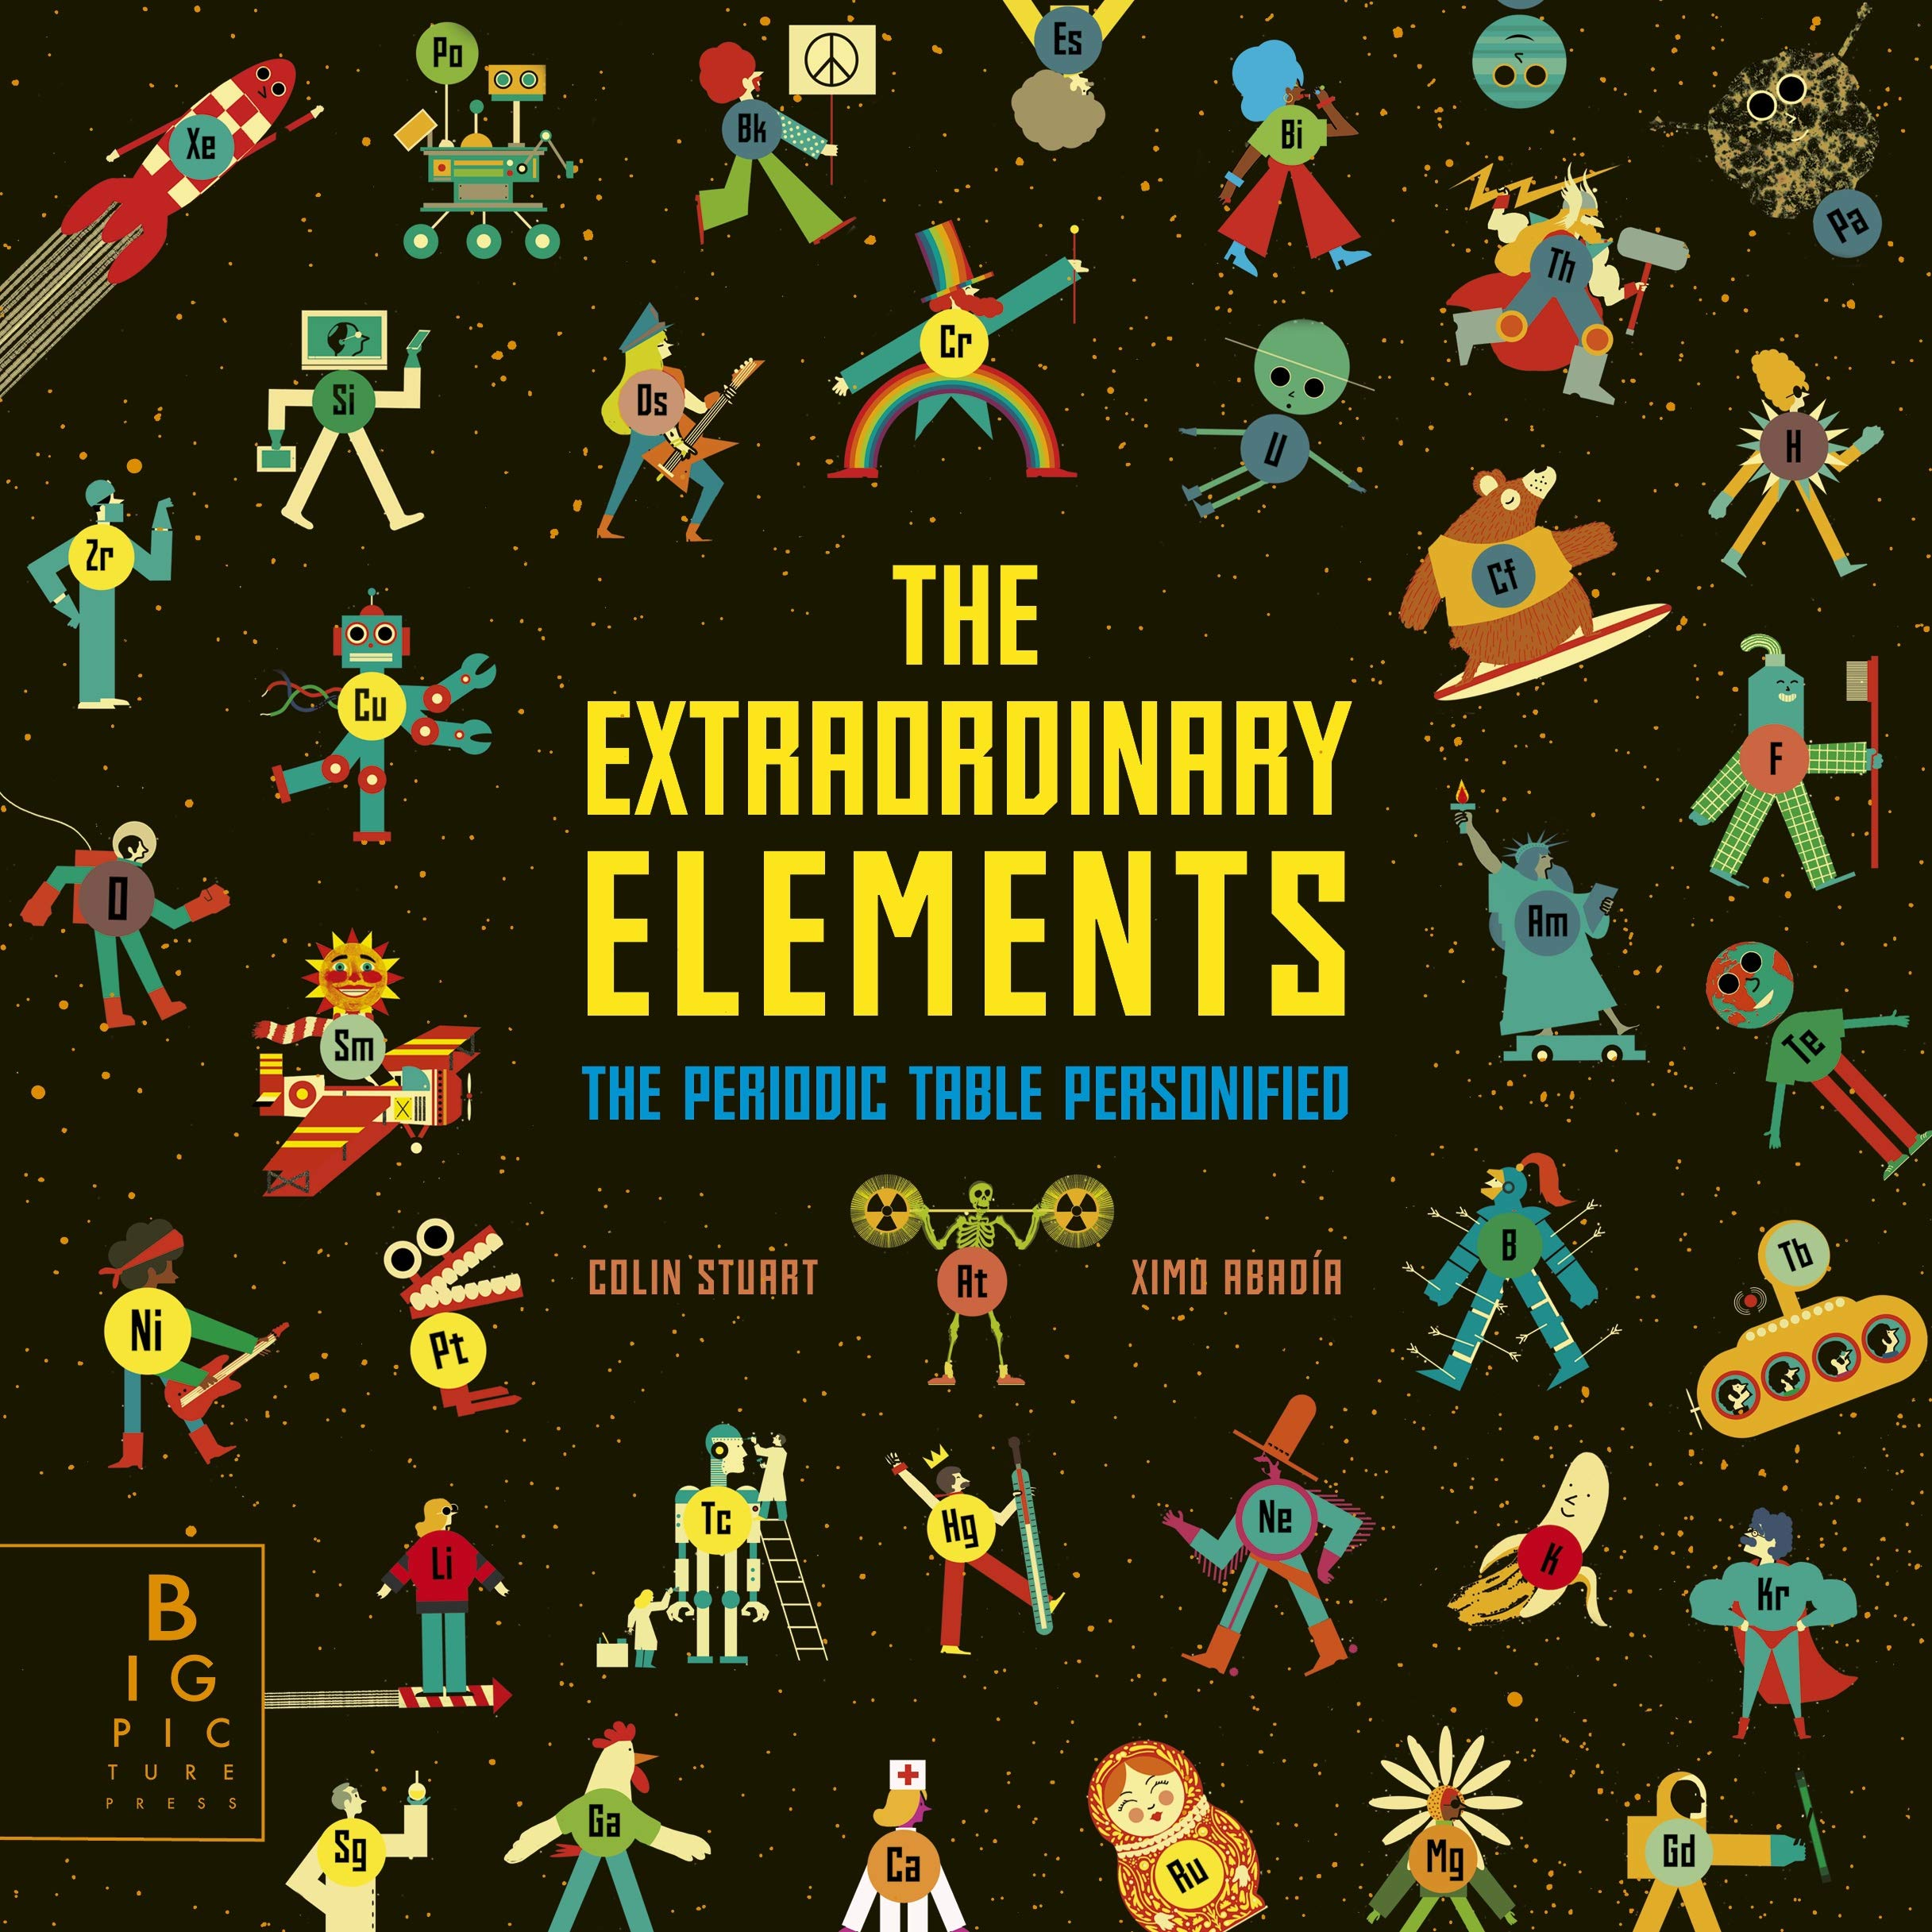 The front cover of The Extraordinary Elements by Colin Stuart